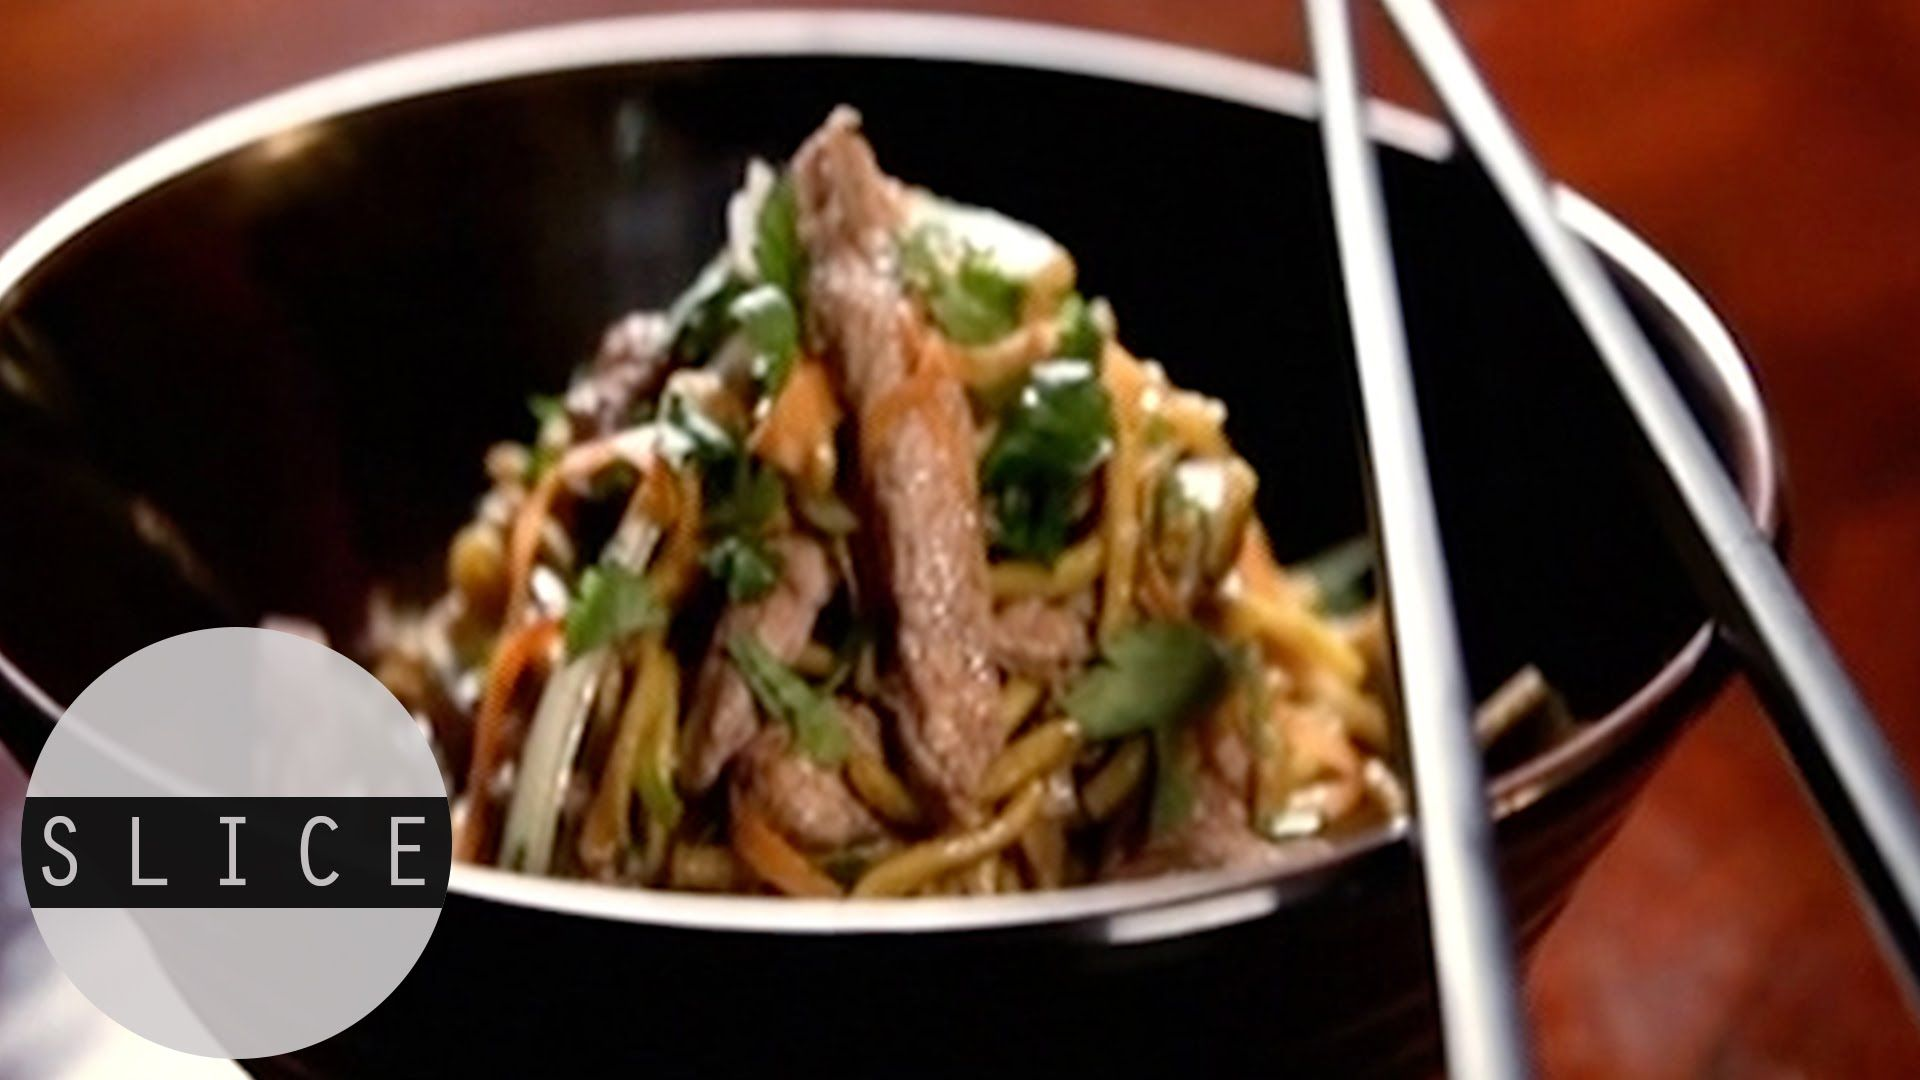 From wok to bowl in just 7 mins this street food recipe is perfect from wok to bowl in just 7 mins this street food recipe is perfect to forumfinder Choice Image